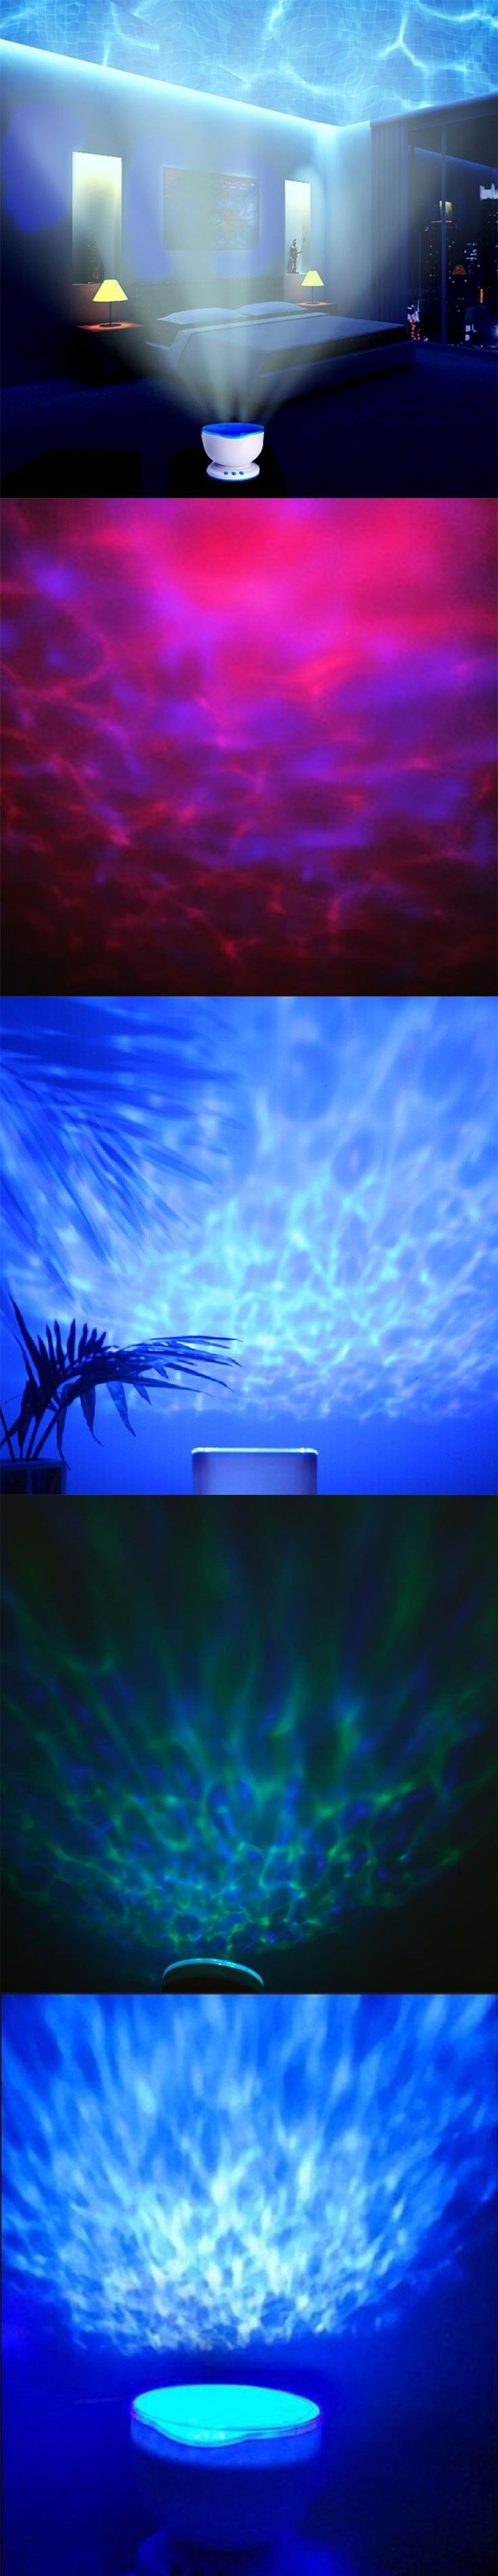 56 best lights for bedrooms images on pinterest night light this small projection lamp that creates a sparkling wave effect on any ceiling or wall use it in your bedroom bathroom or living room to transform it into aloadofball Choice Image